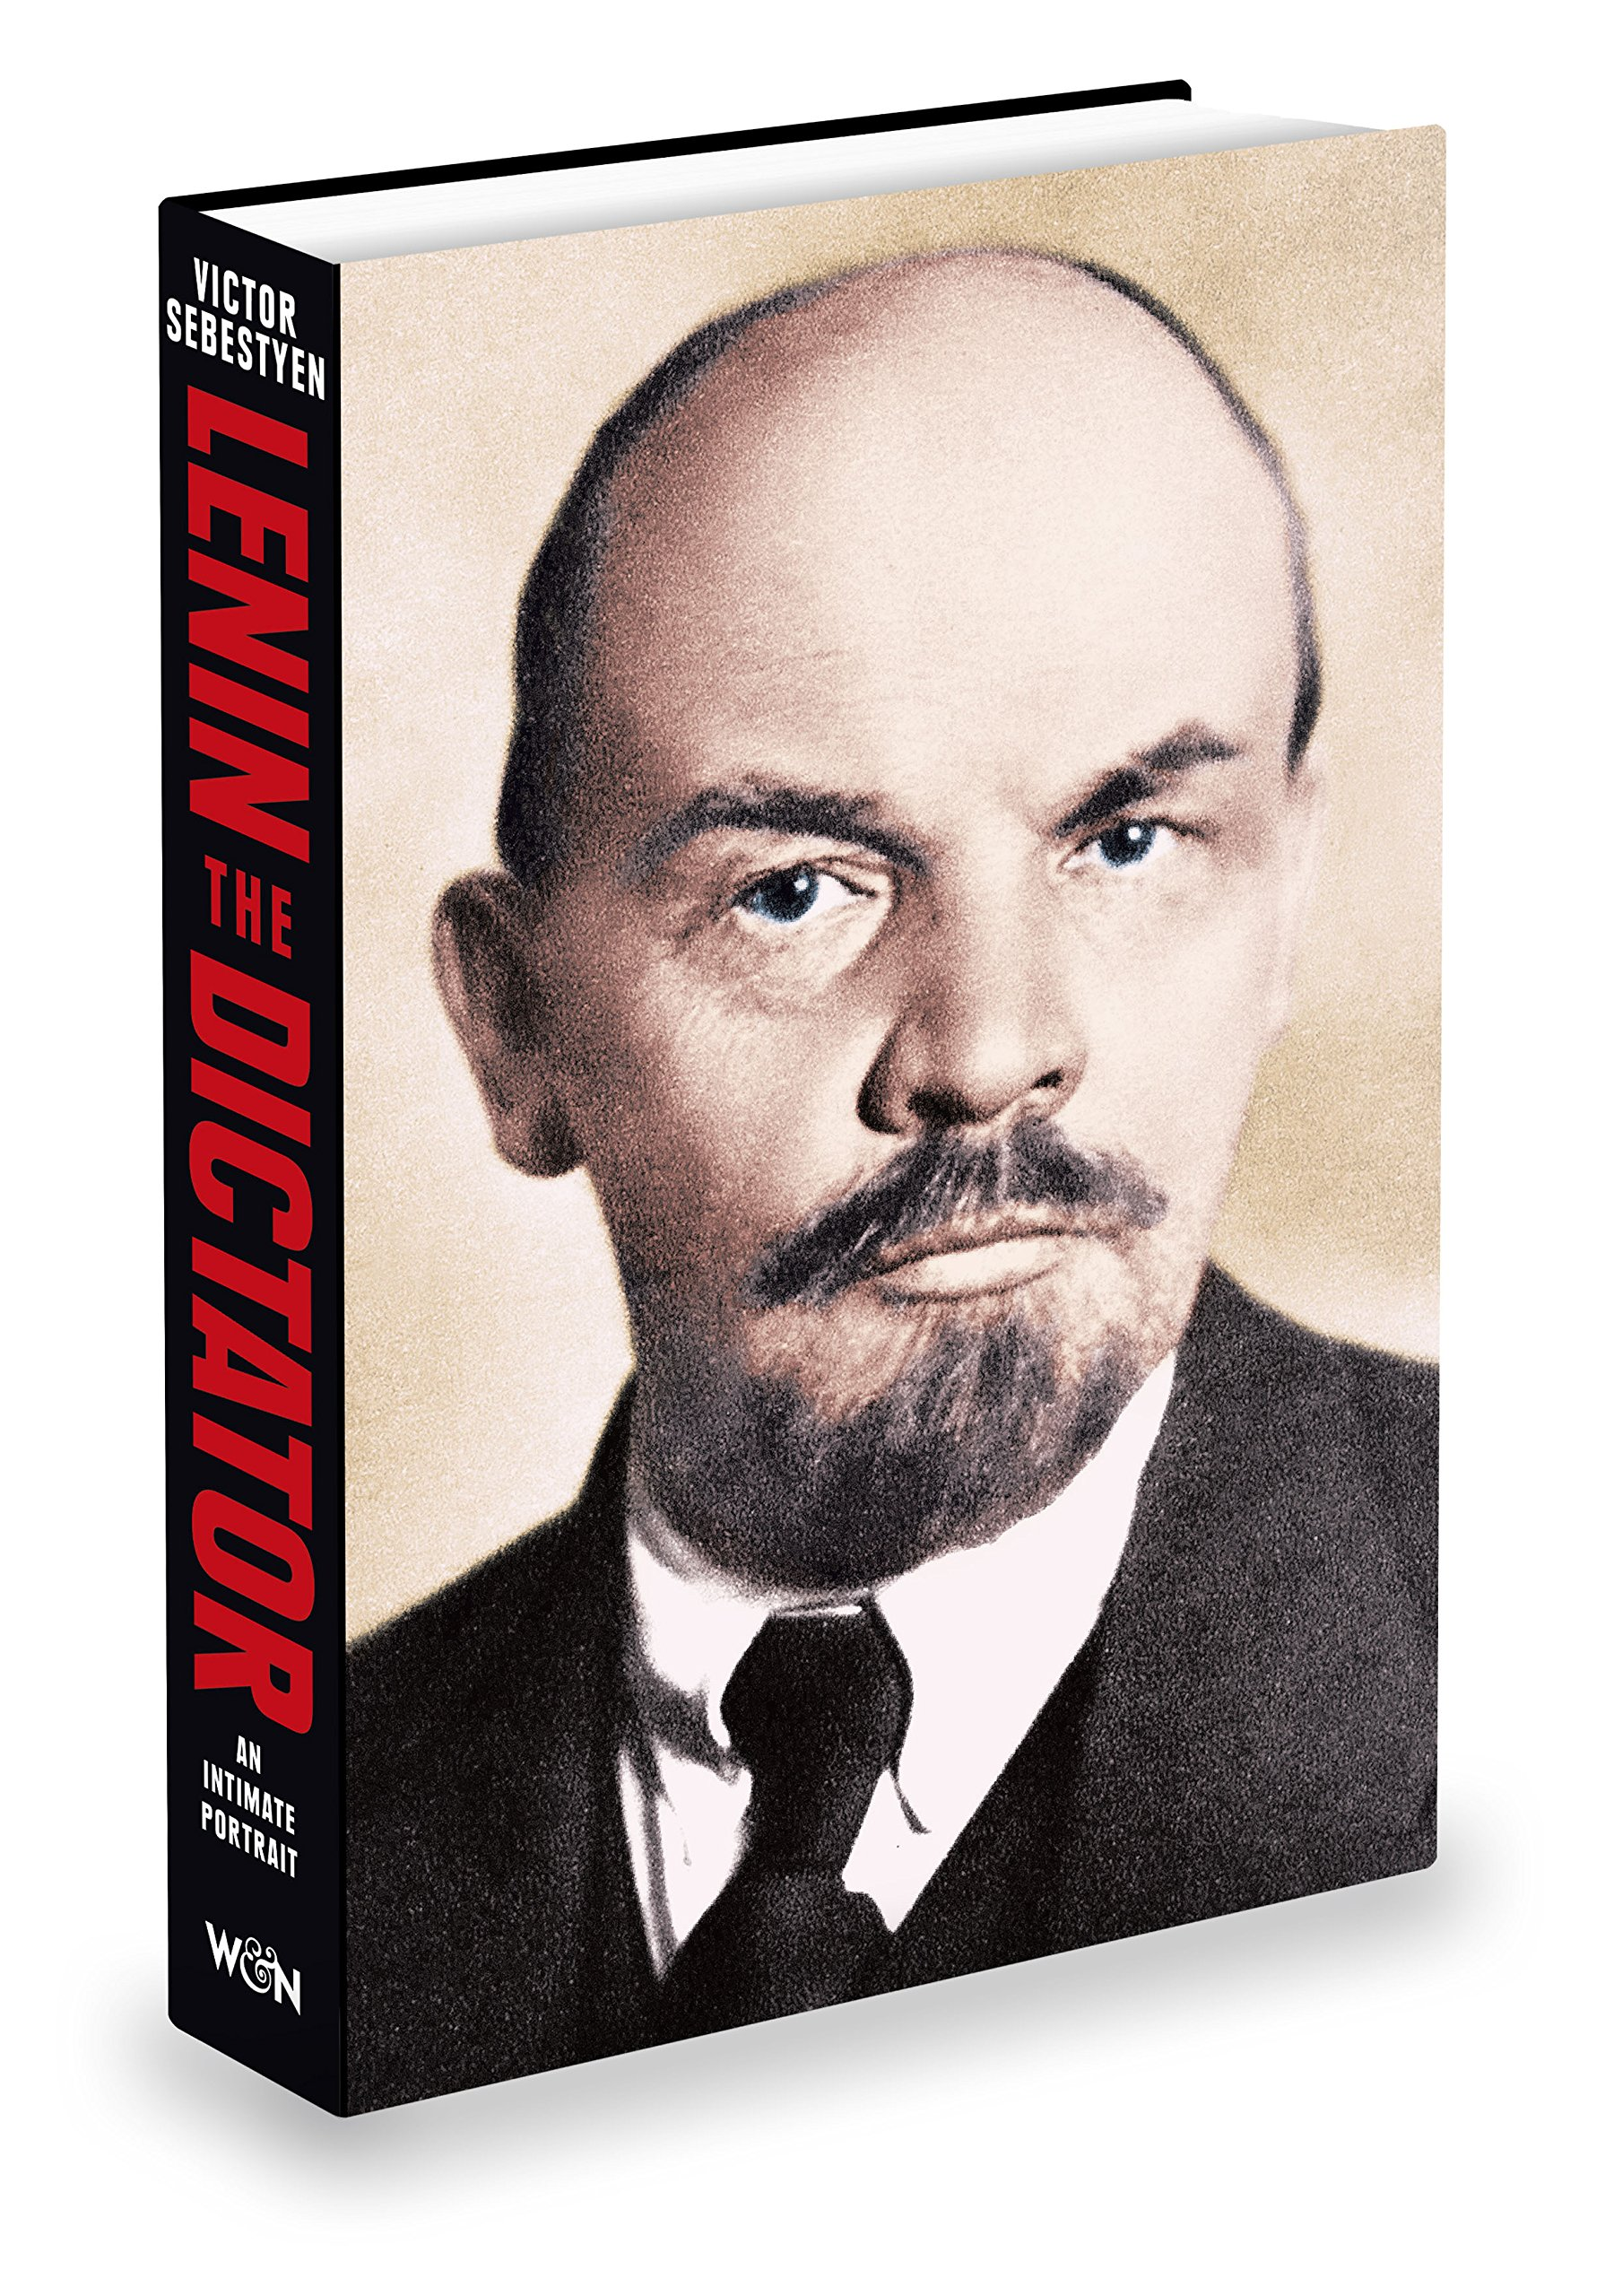 Lenin the Dictator: An Intimate Portrait service lenin a political life vol 1 the strengths of contradiction